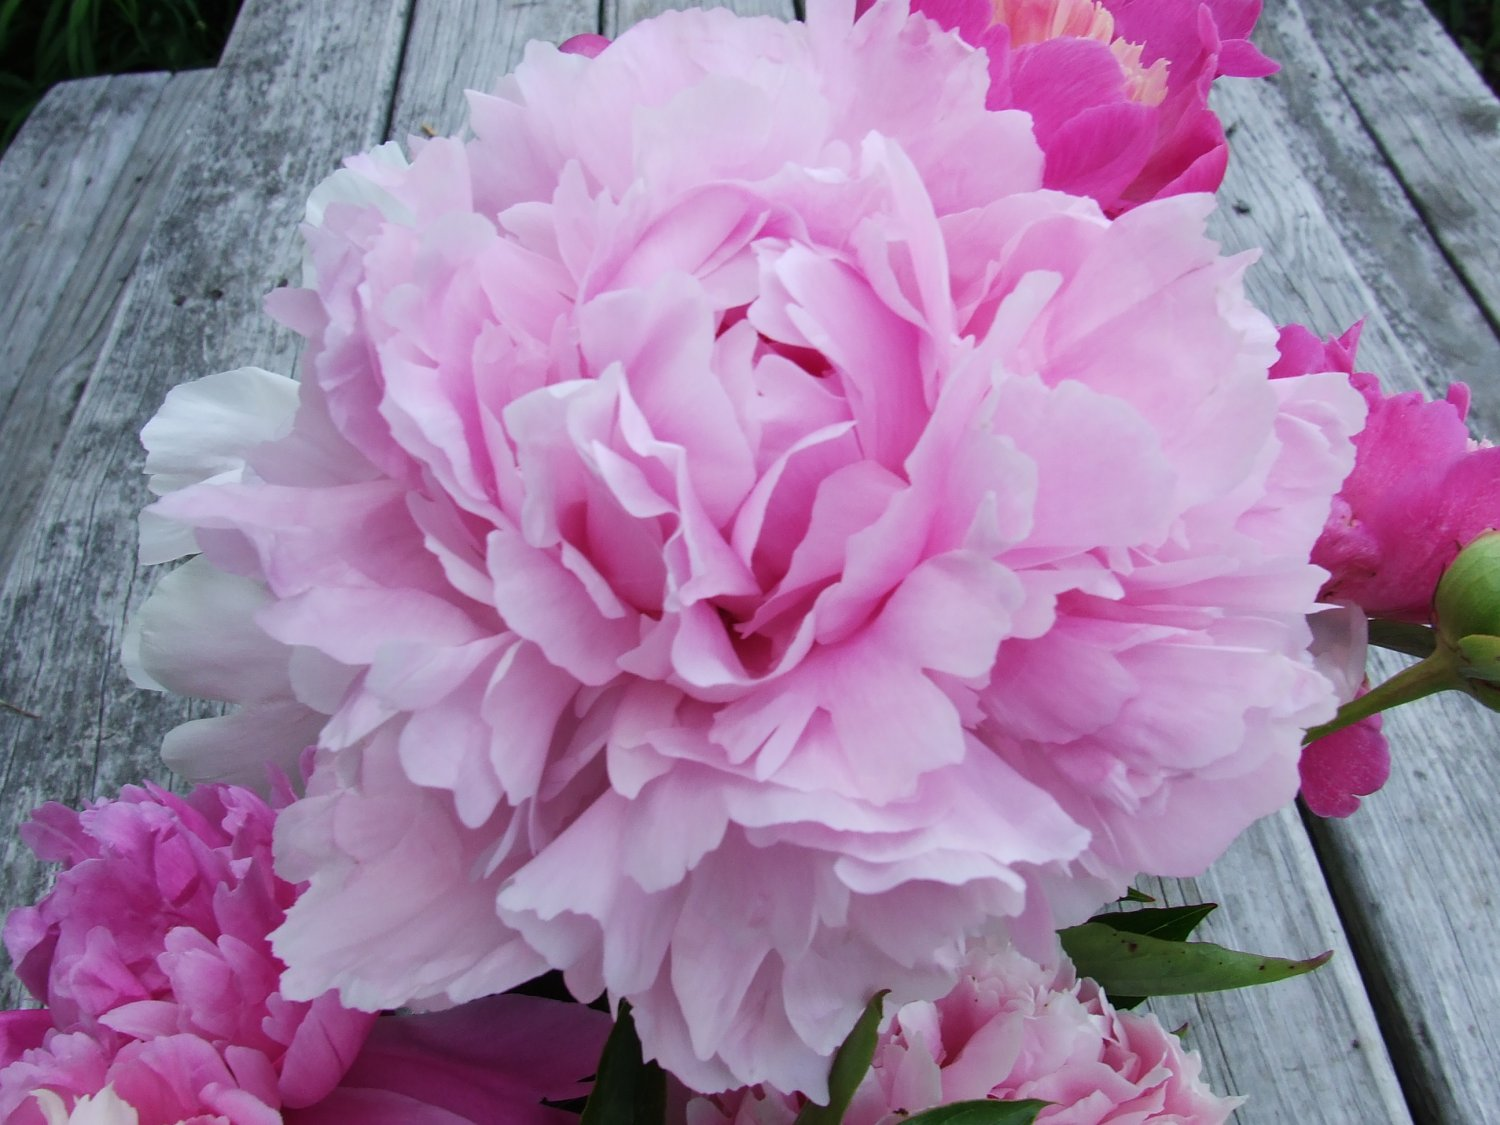 Peonies Flowers 30 Stems Pink Arrival April 28 through May 2011 Arrival